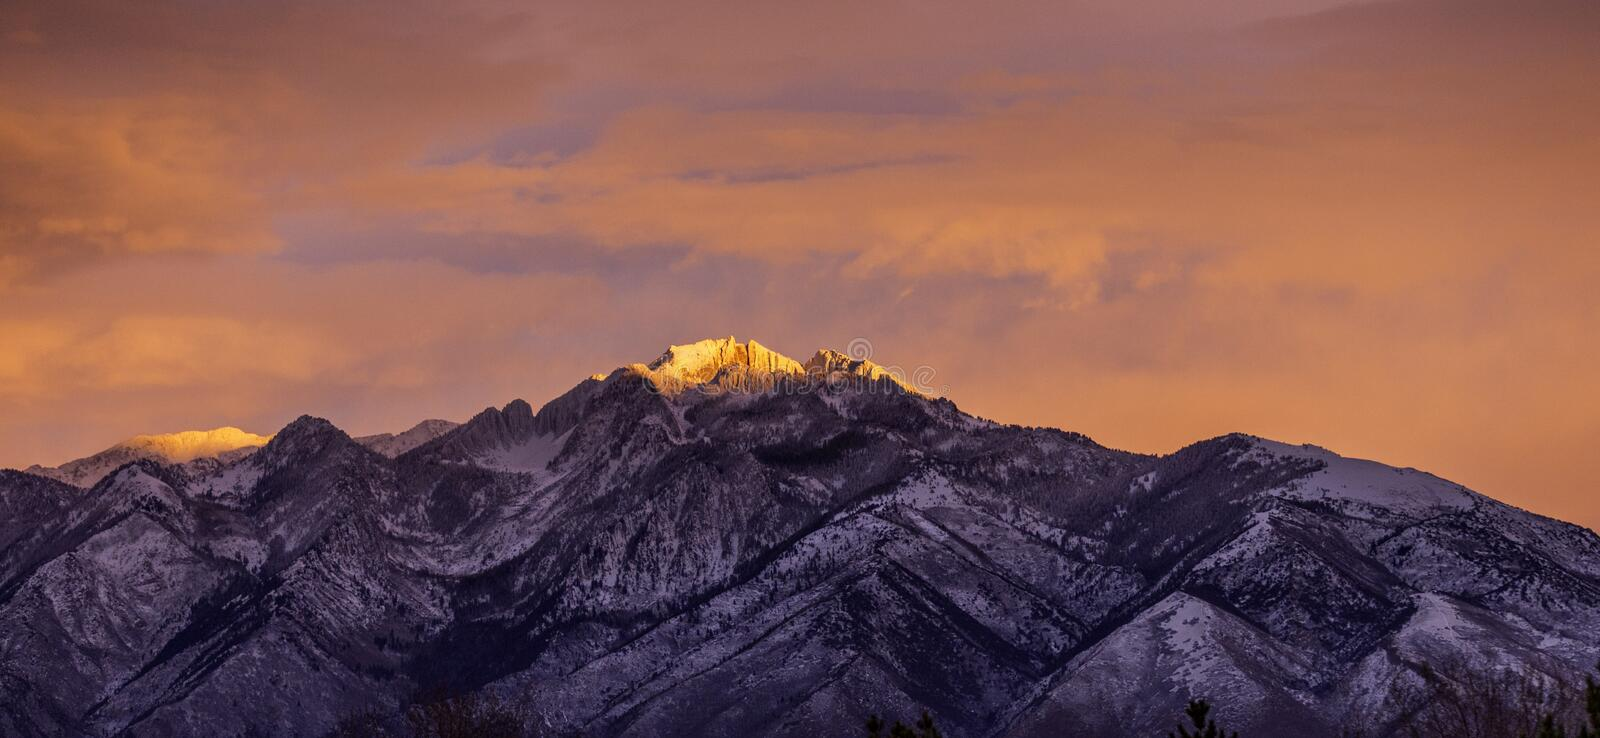 Pink Sky And Light On Mountain. Pink Sky showing on Lone Peak Mountain at sunset stock photos